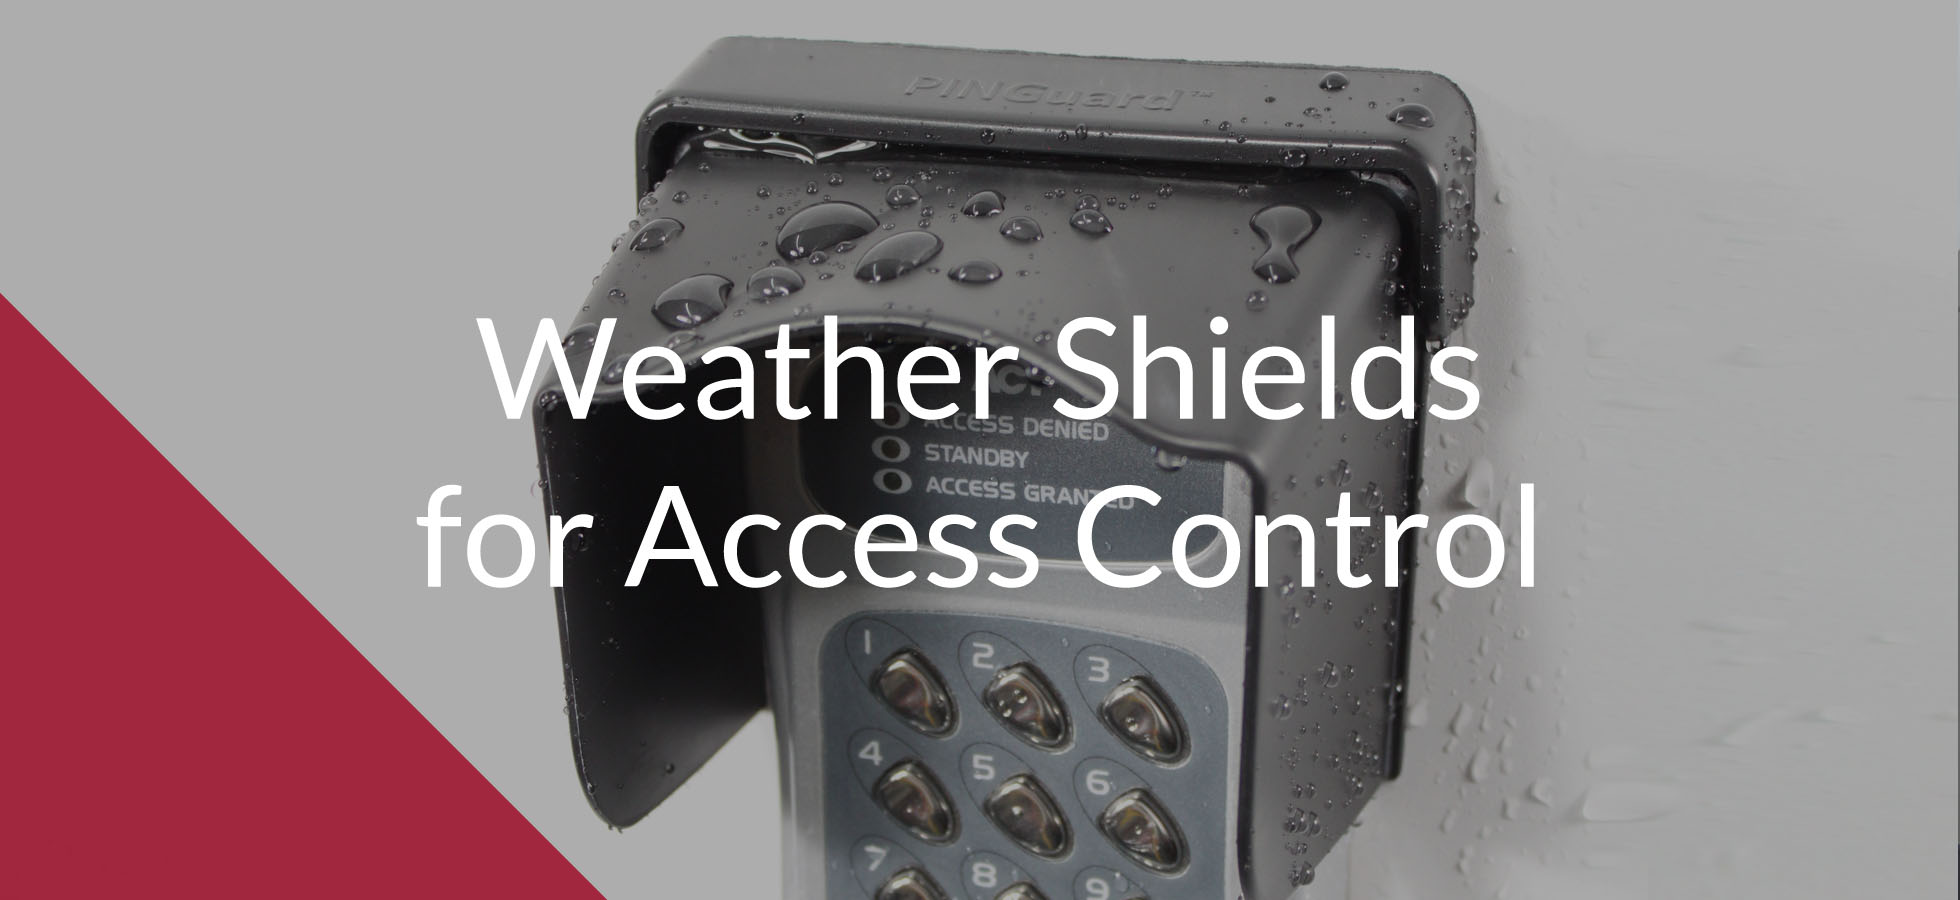 Weather shields for access control systems